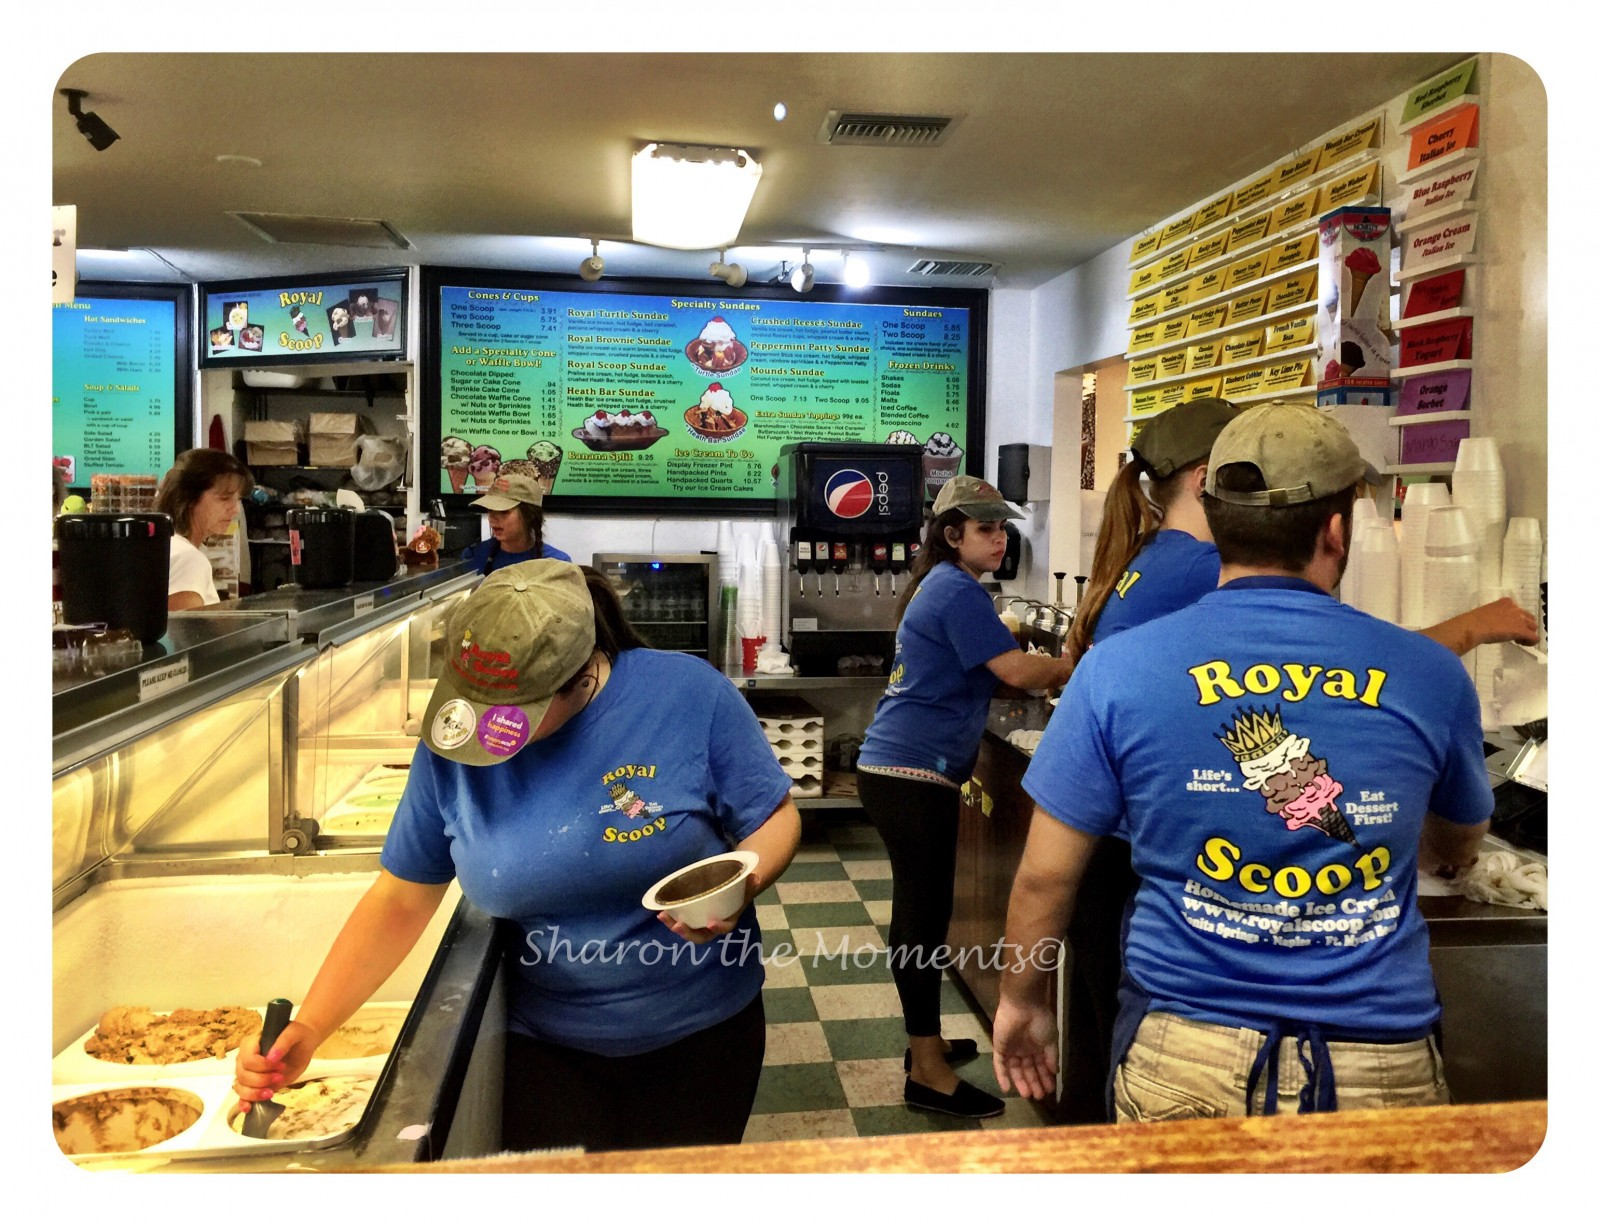 Royal Scoop Ice Cream Treat in Southwest Florida| Sharon the Moments Blog